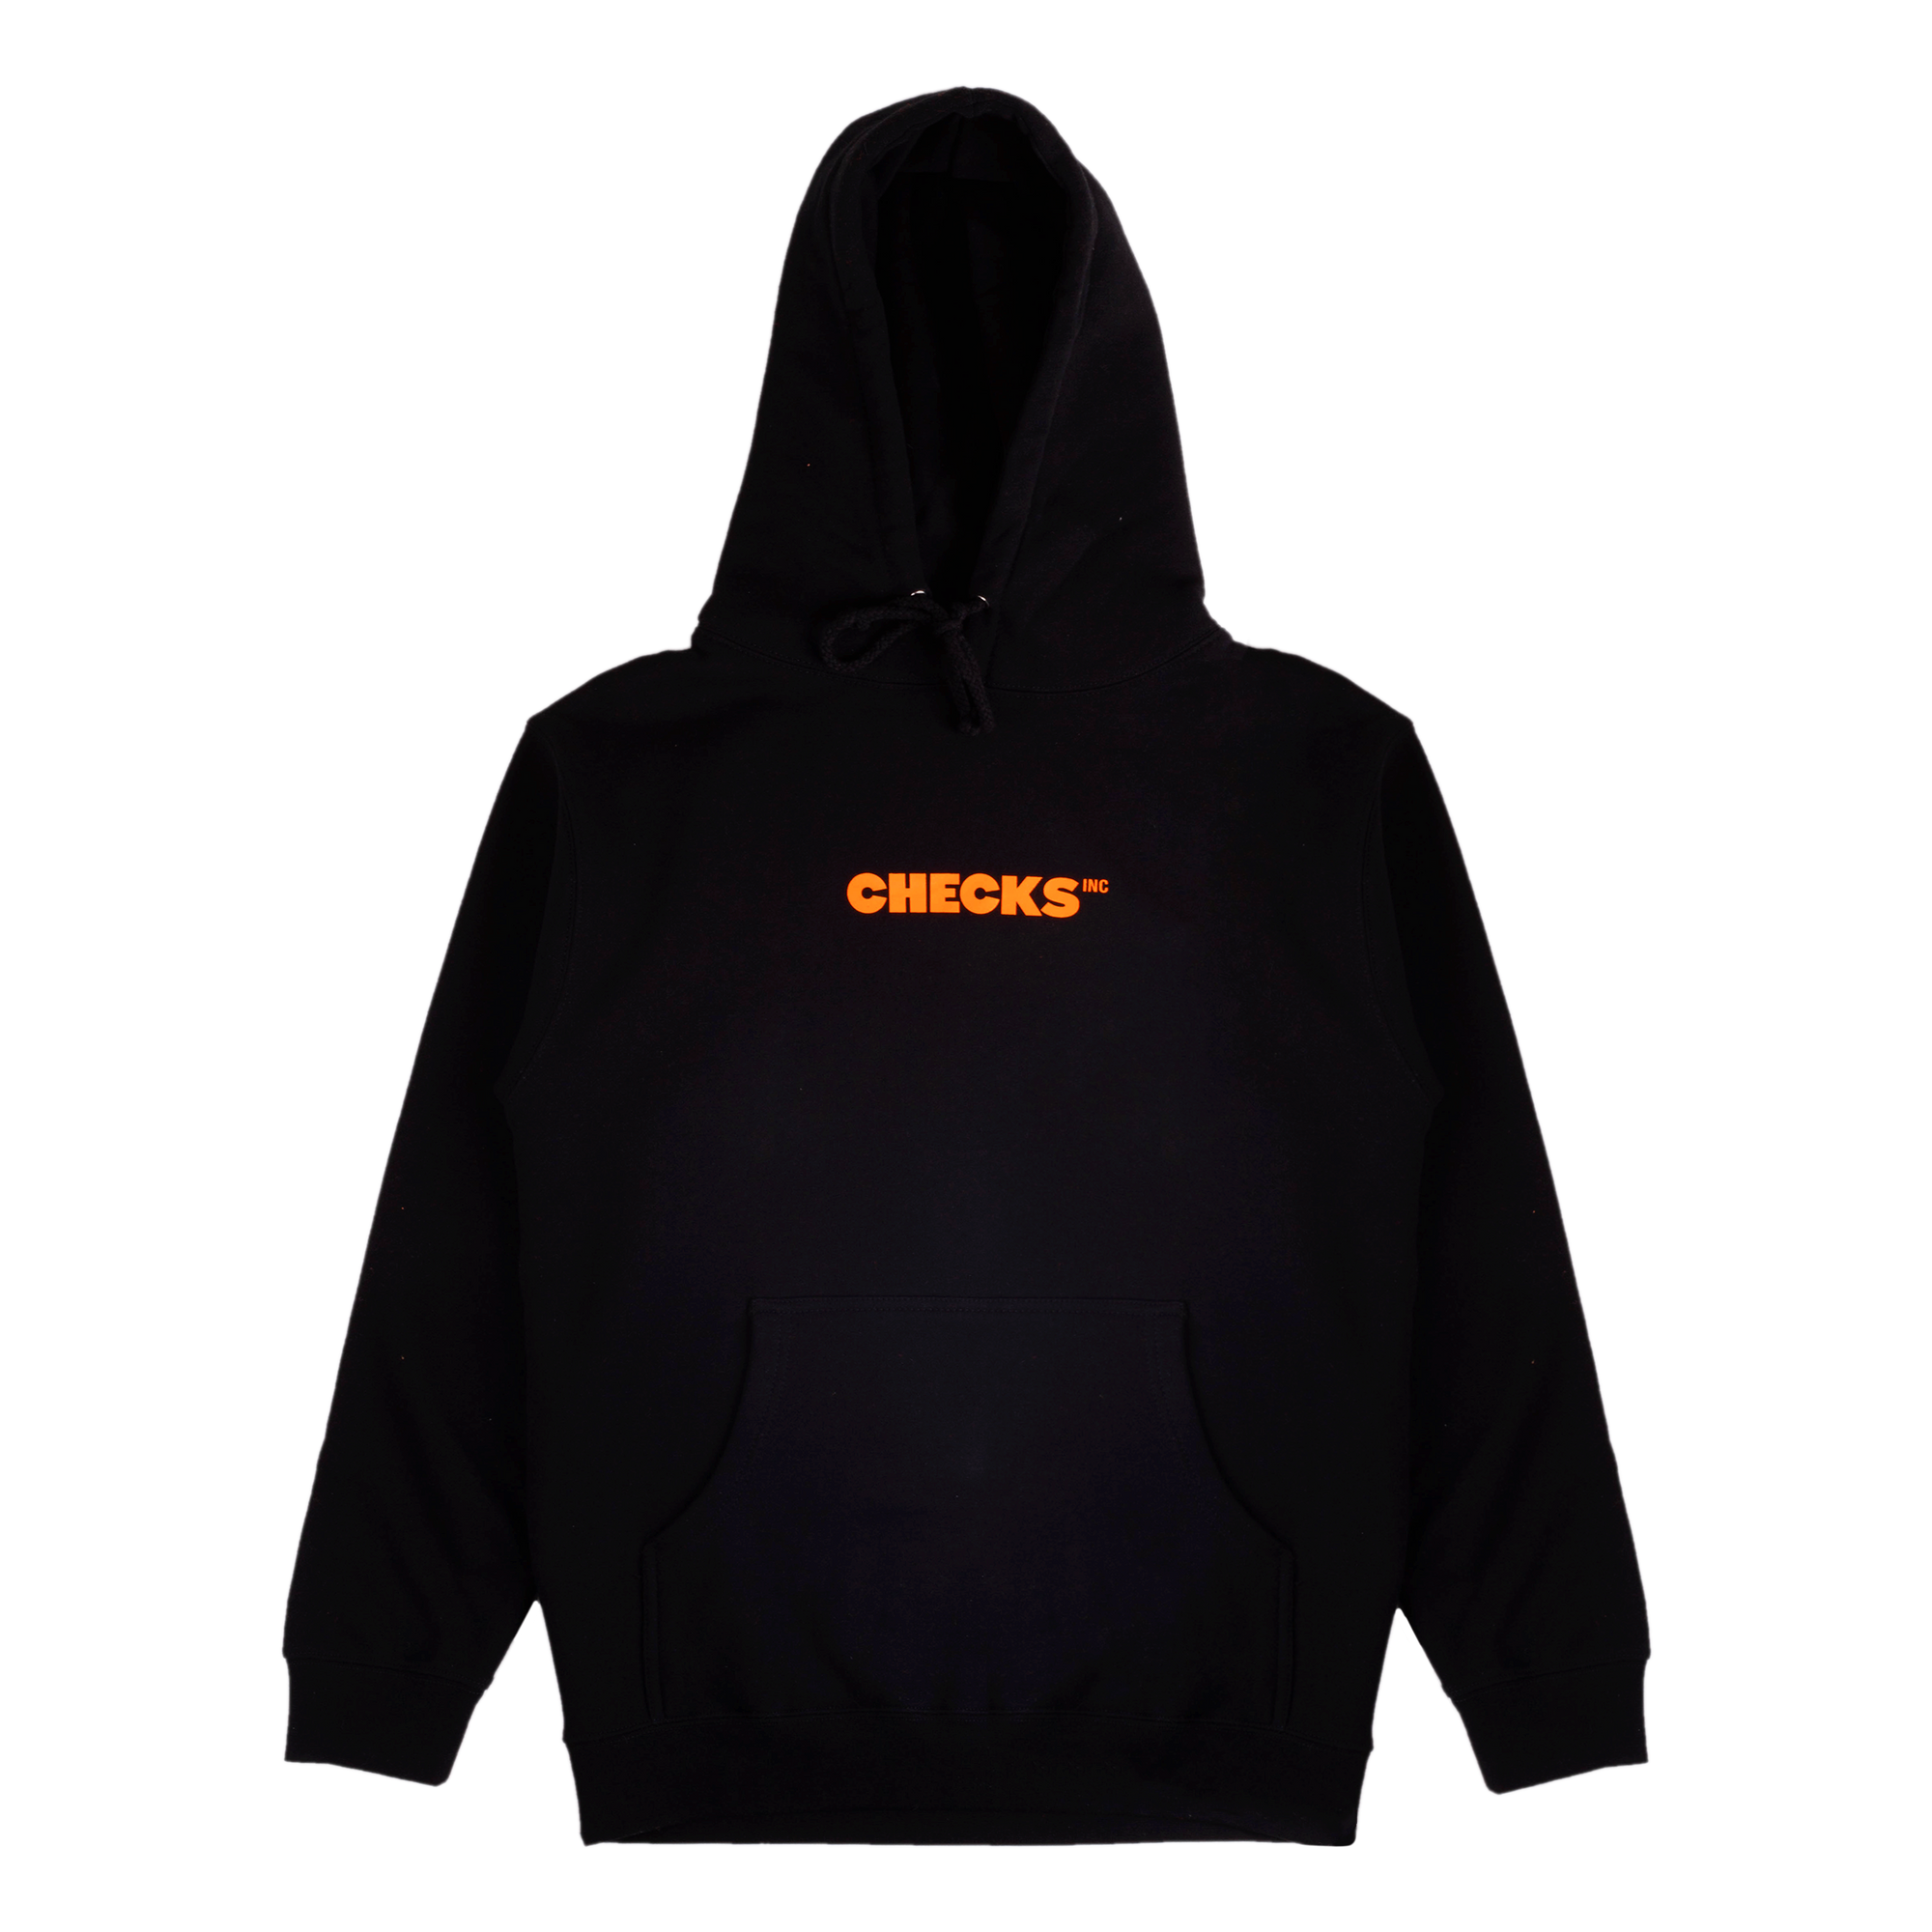 Load image into Gallery viewer, Checks Classic Hoodie Black | CHECKS DOWNTOWN